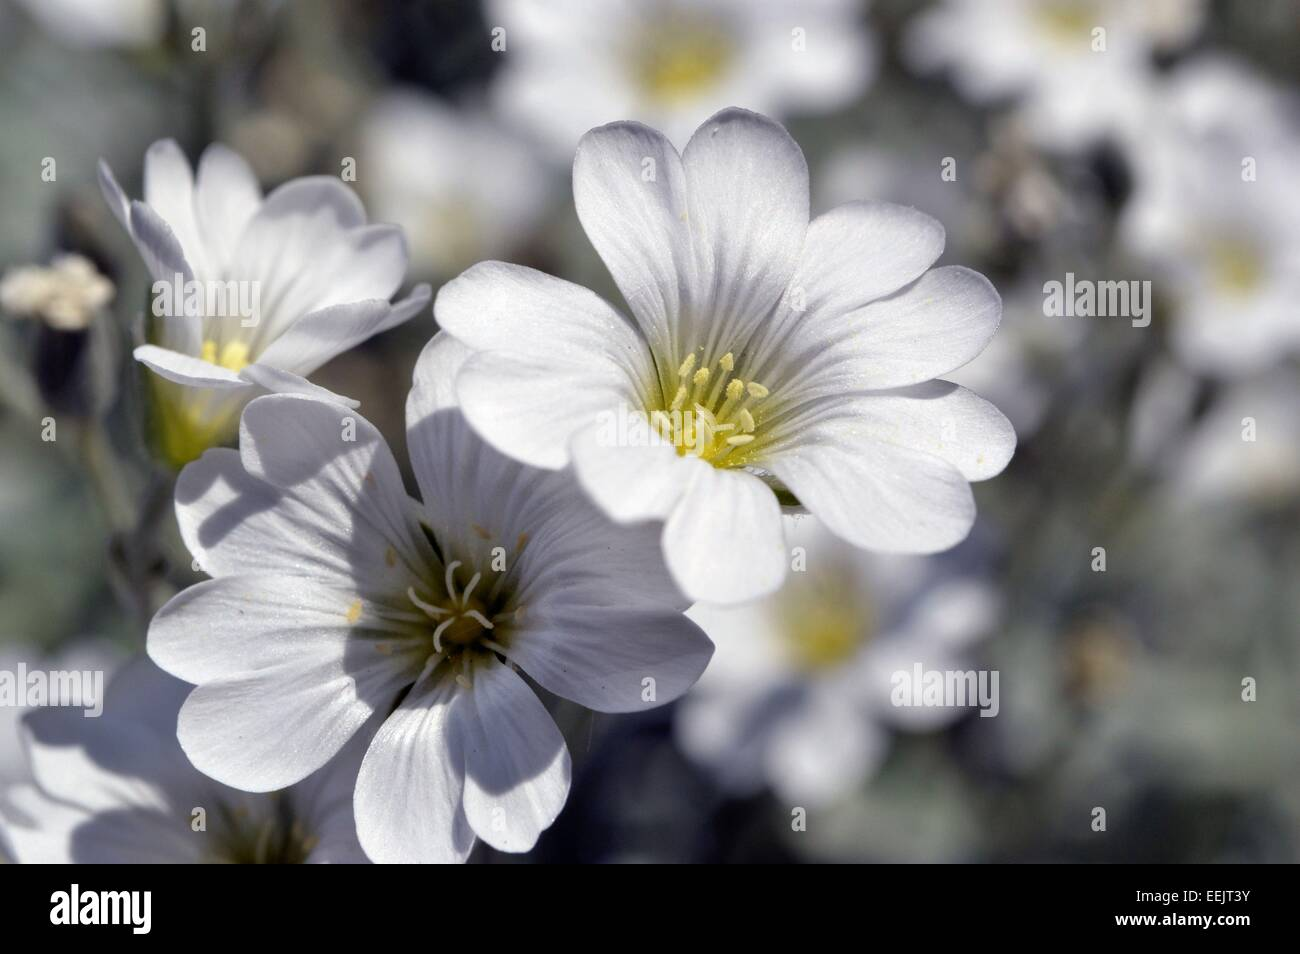 White flowers with yellow centers stock photos white flowers with lovely sunlit white flowers to the left in full focus with other white flowers in background mightylinksfo